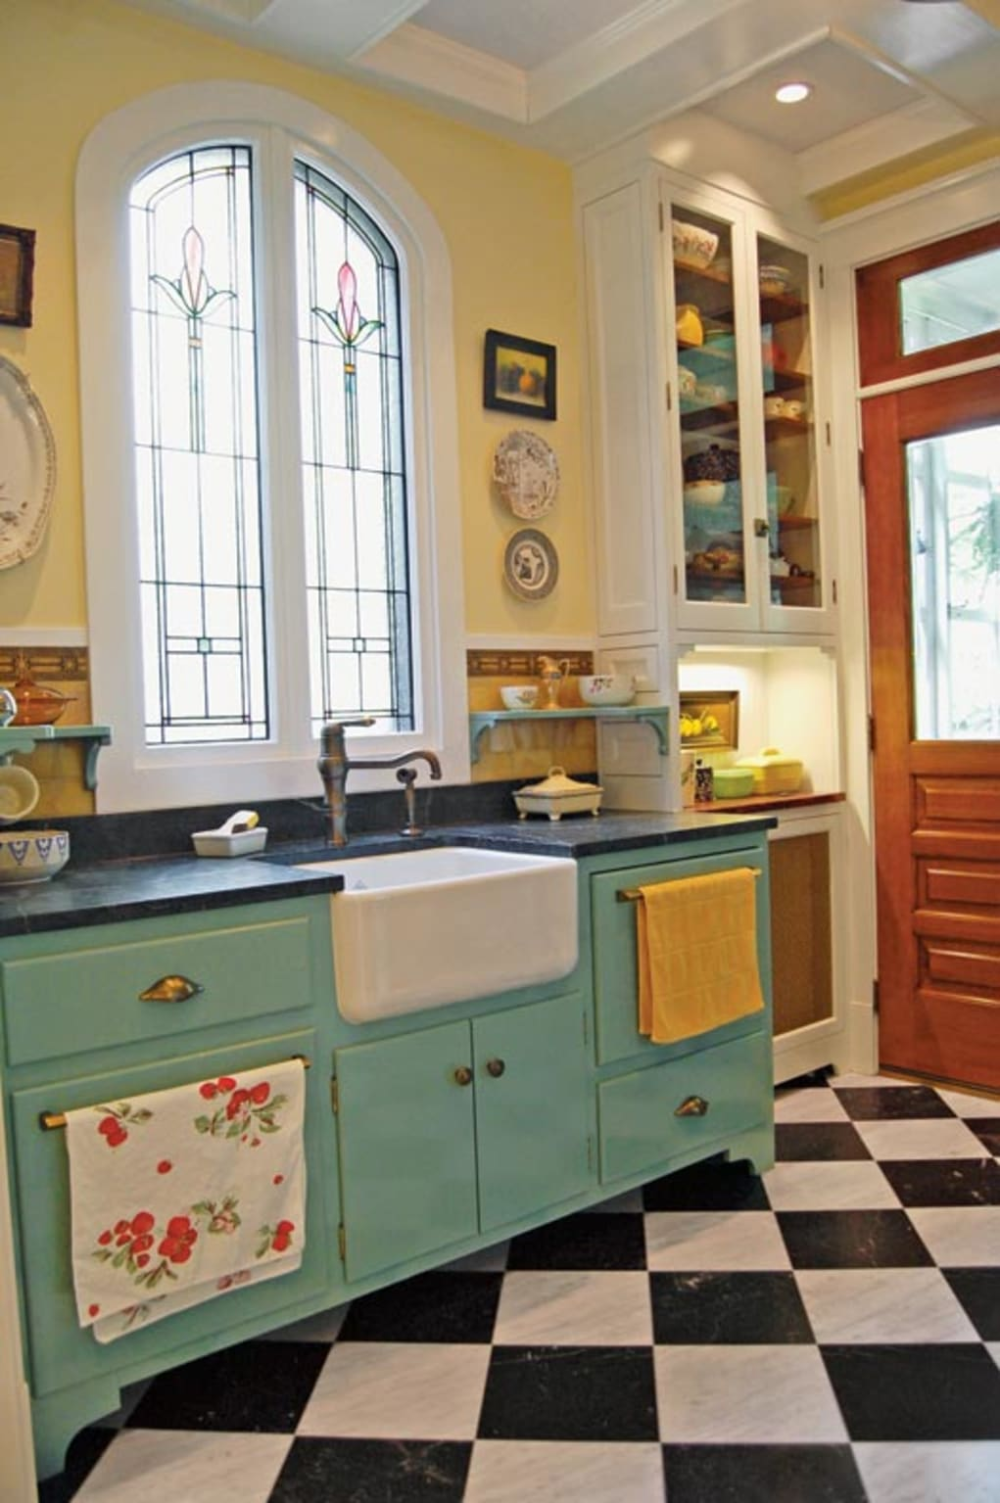 Designing an Eclectic 20th-Century Kitchen